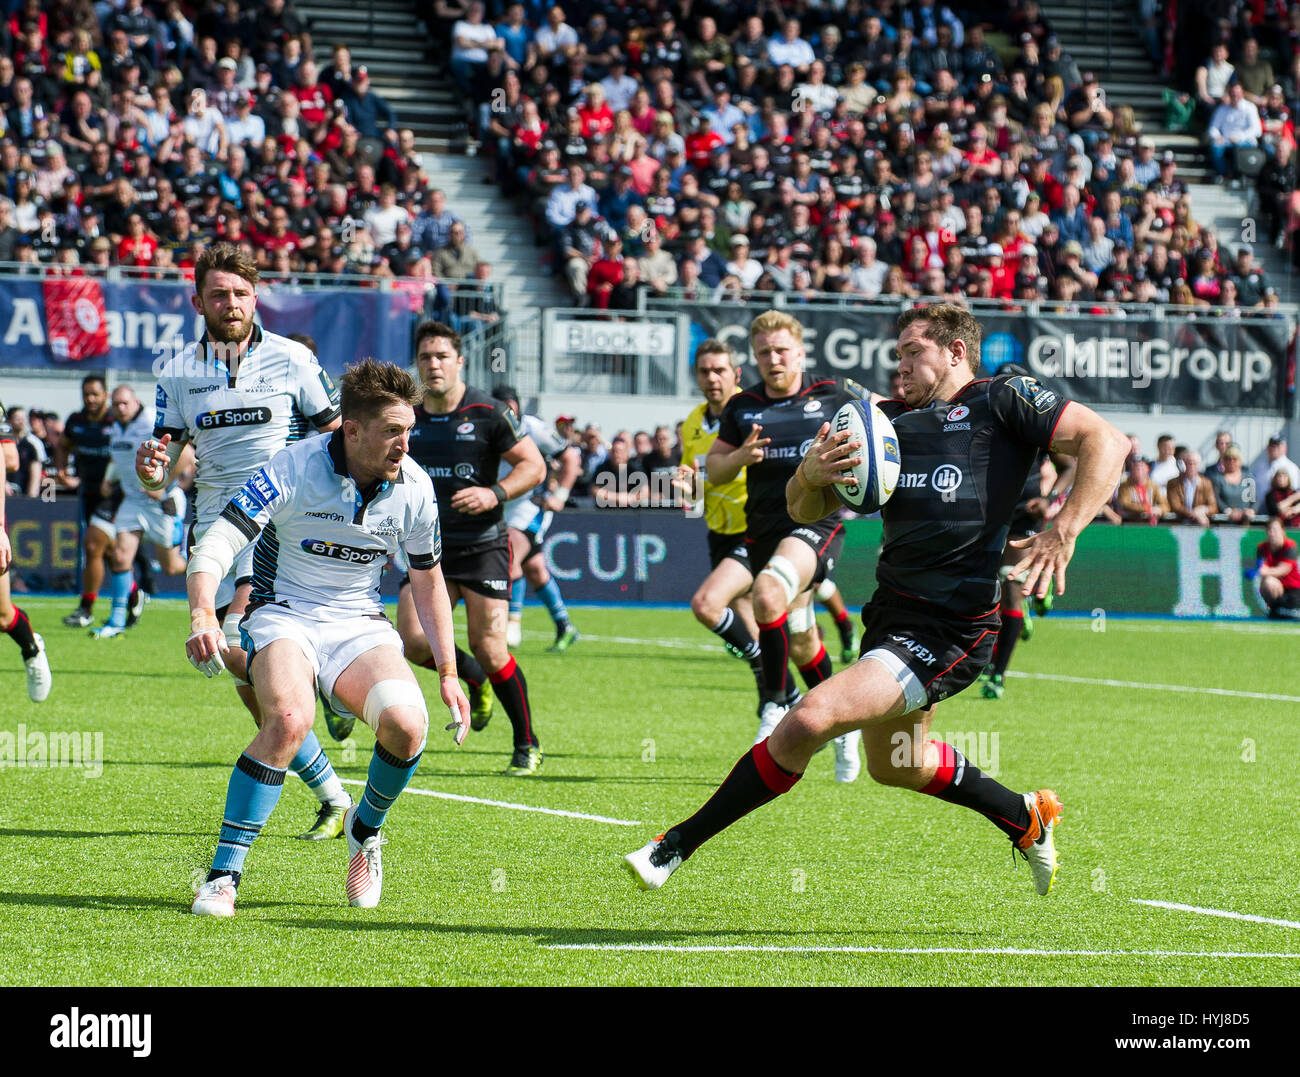 Saracens vs Glasgow Warriors Imagen De Stock